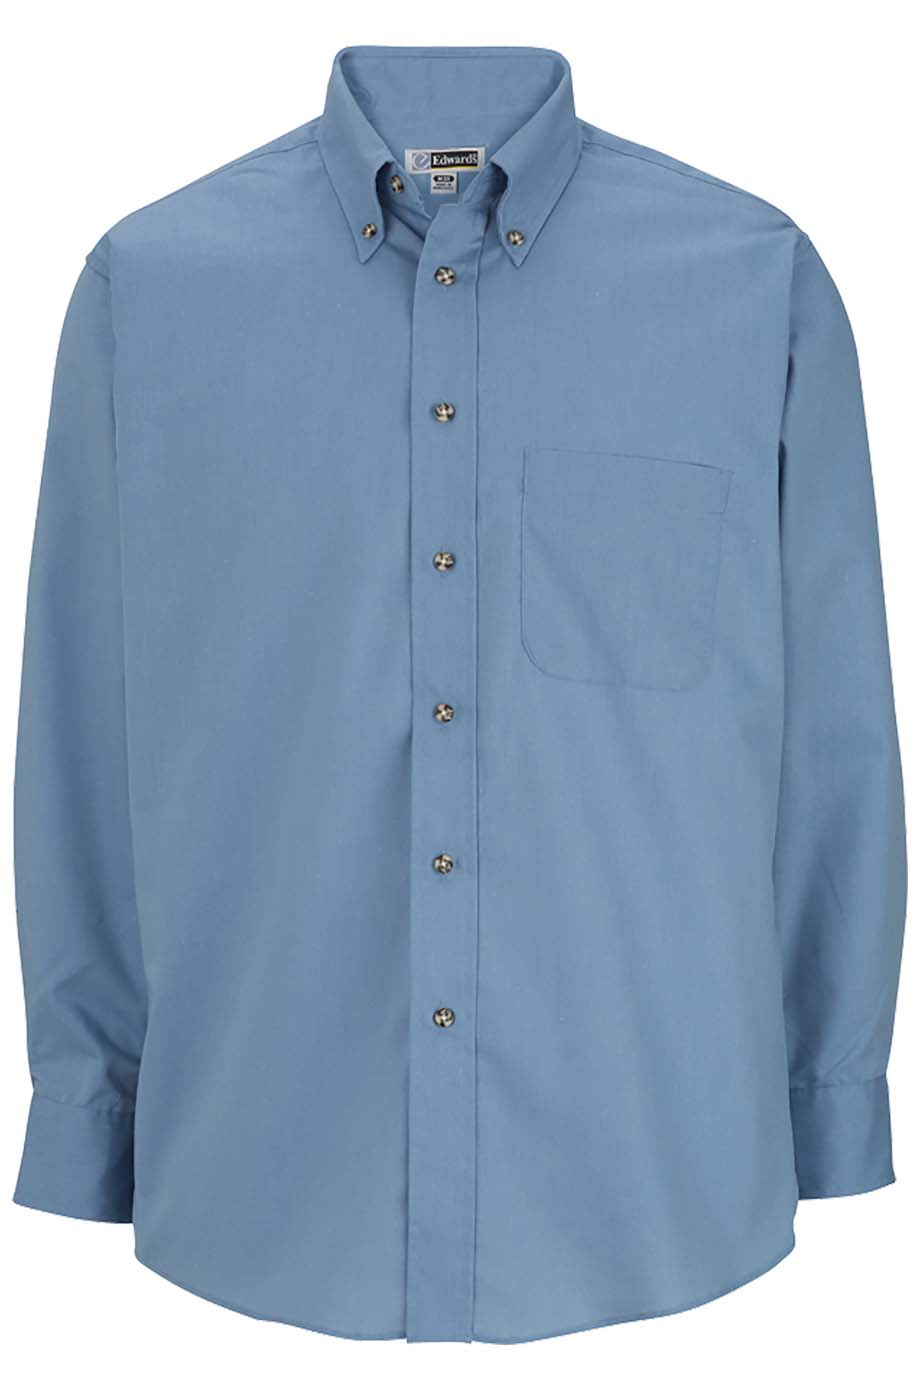 Denim Blue Edwards Mens Easy Care Long Sleeve Poplin Shirt